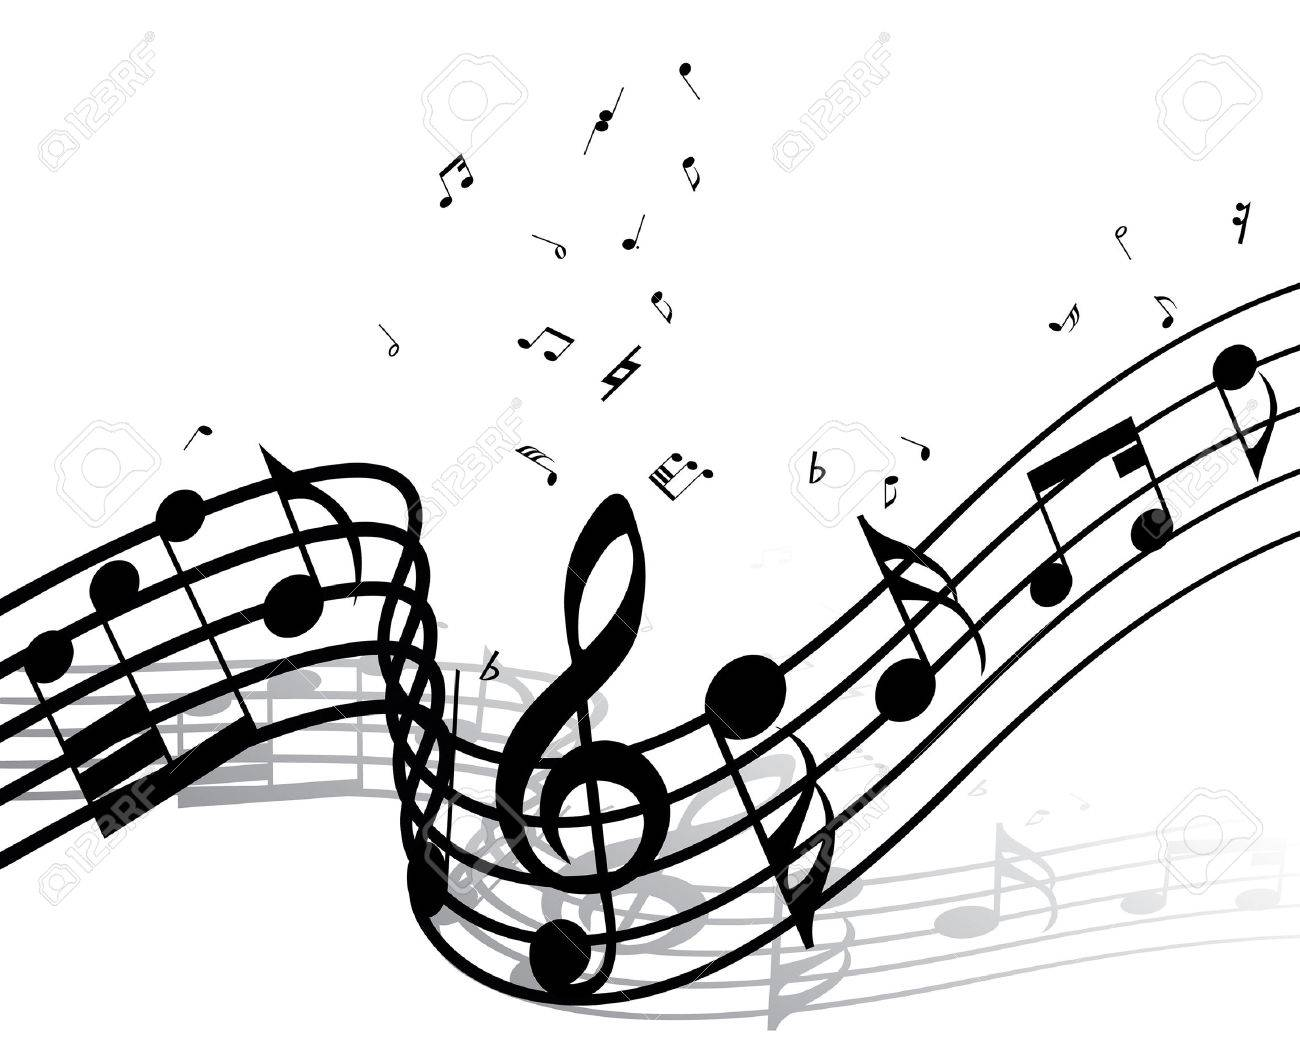 Musical notes staff background on white vector by tassel78 image - Clef Vector Musical Notes Staff Background For Design Use Illustration